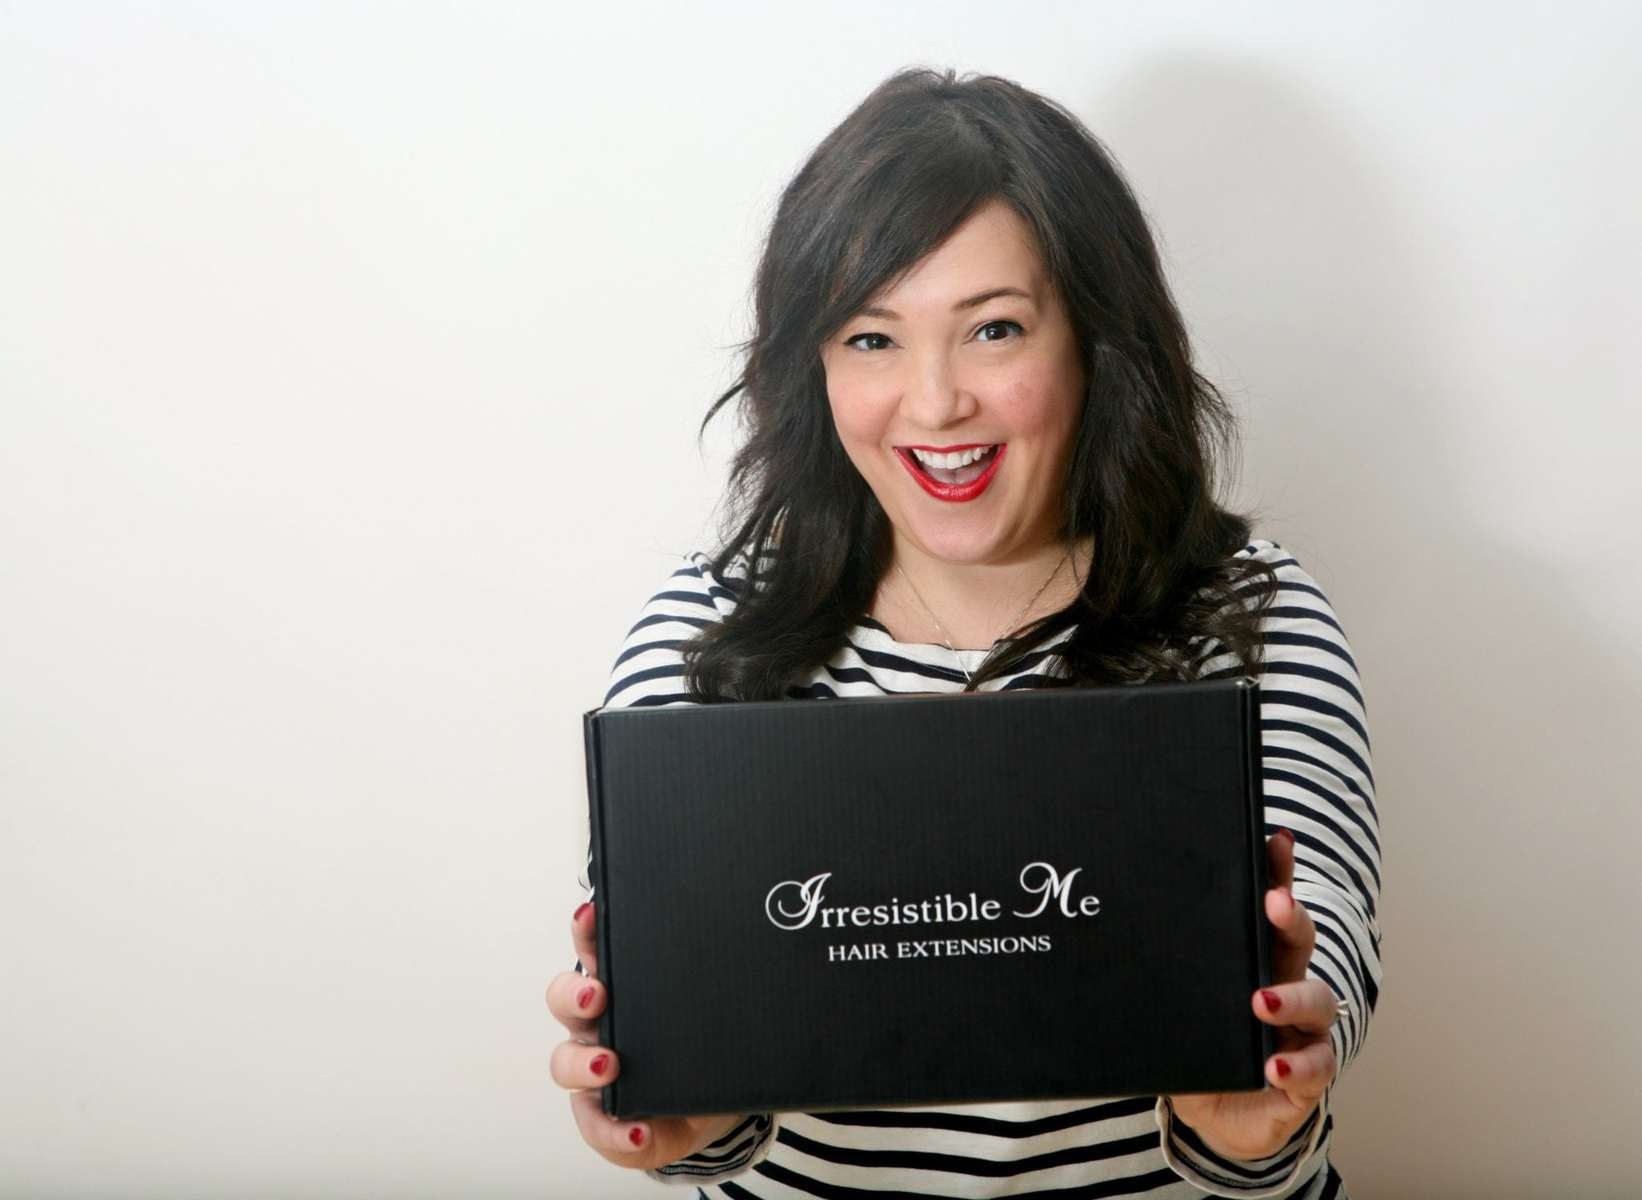 Irresistible Me Hair Extensions Review Wardrobe Oxygen